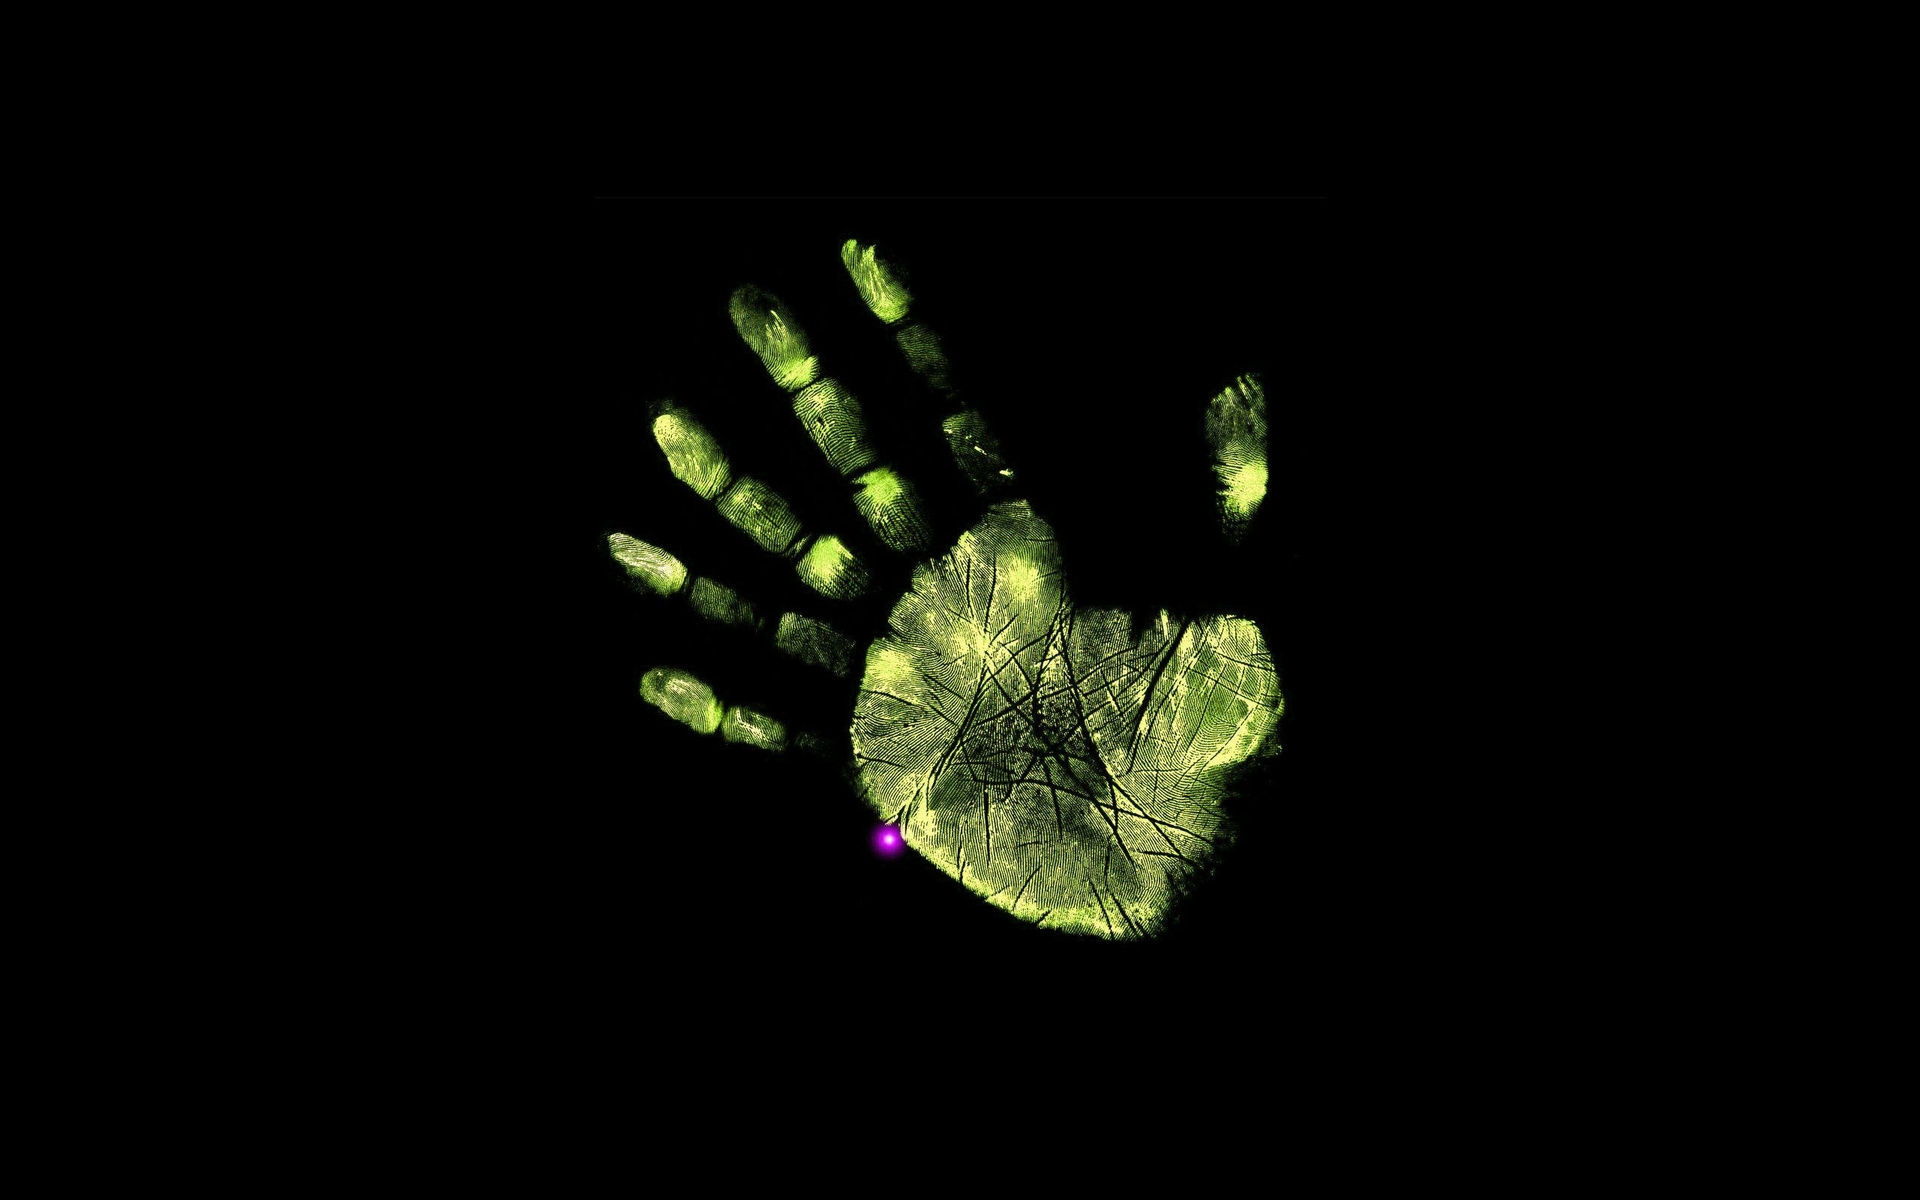 Screensaver from the series Fringe